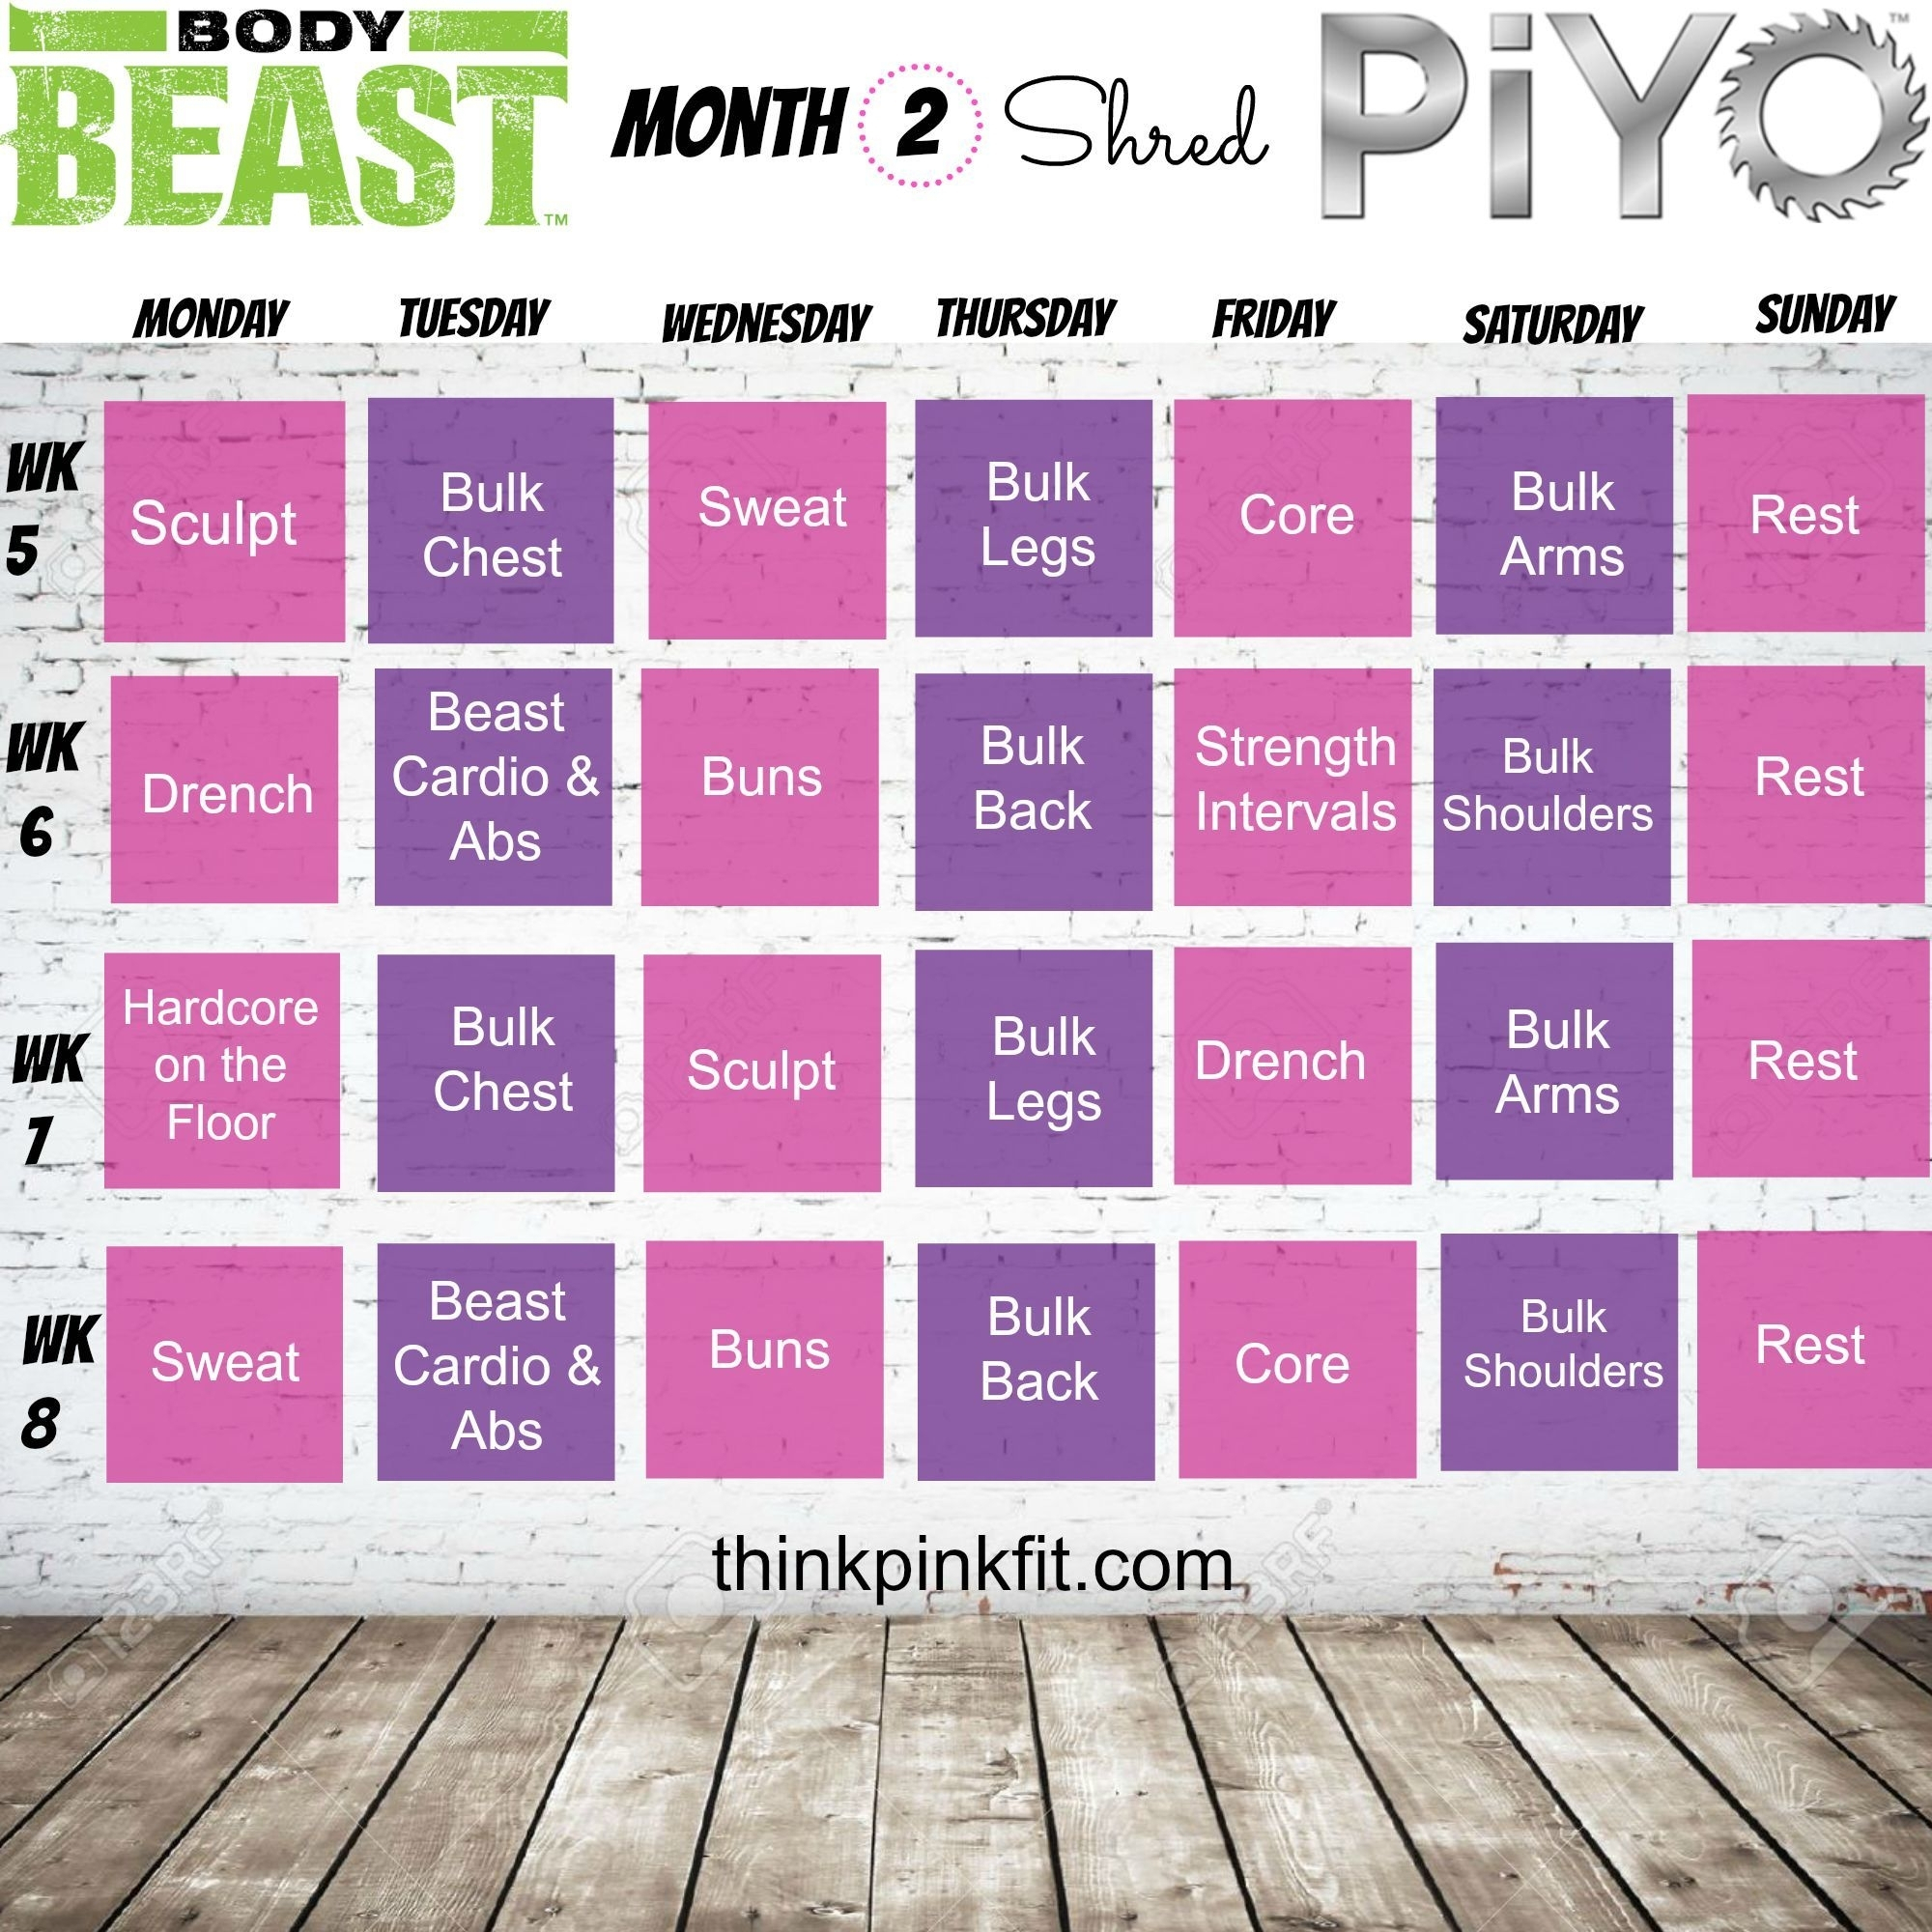 Piyo Monthly Schedule | Monthly Printable Calender intended for Body Beast Hybrid Calendar